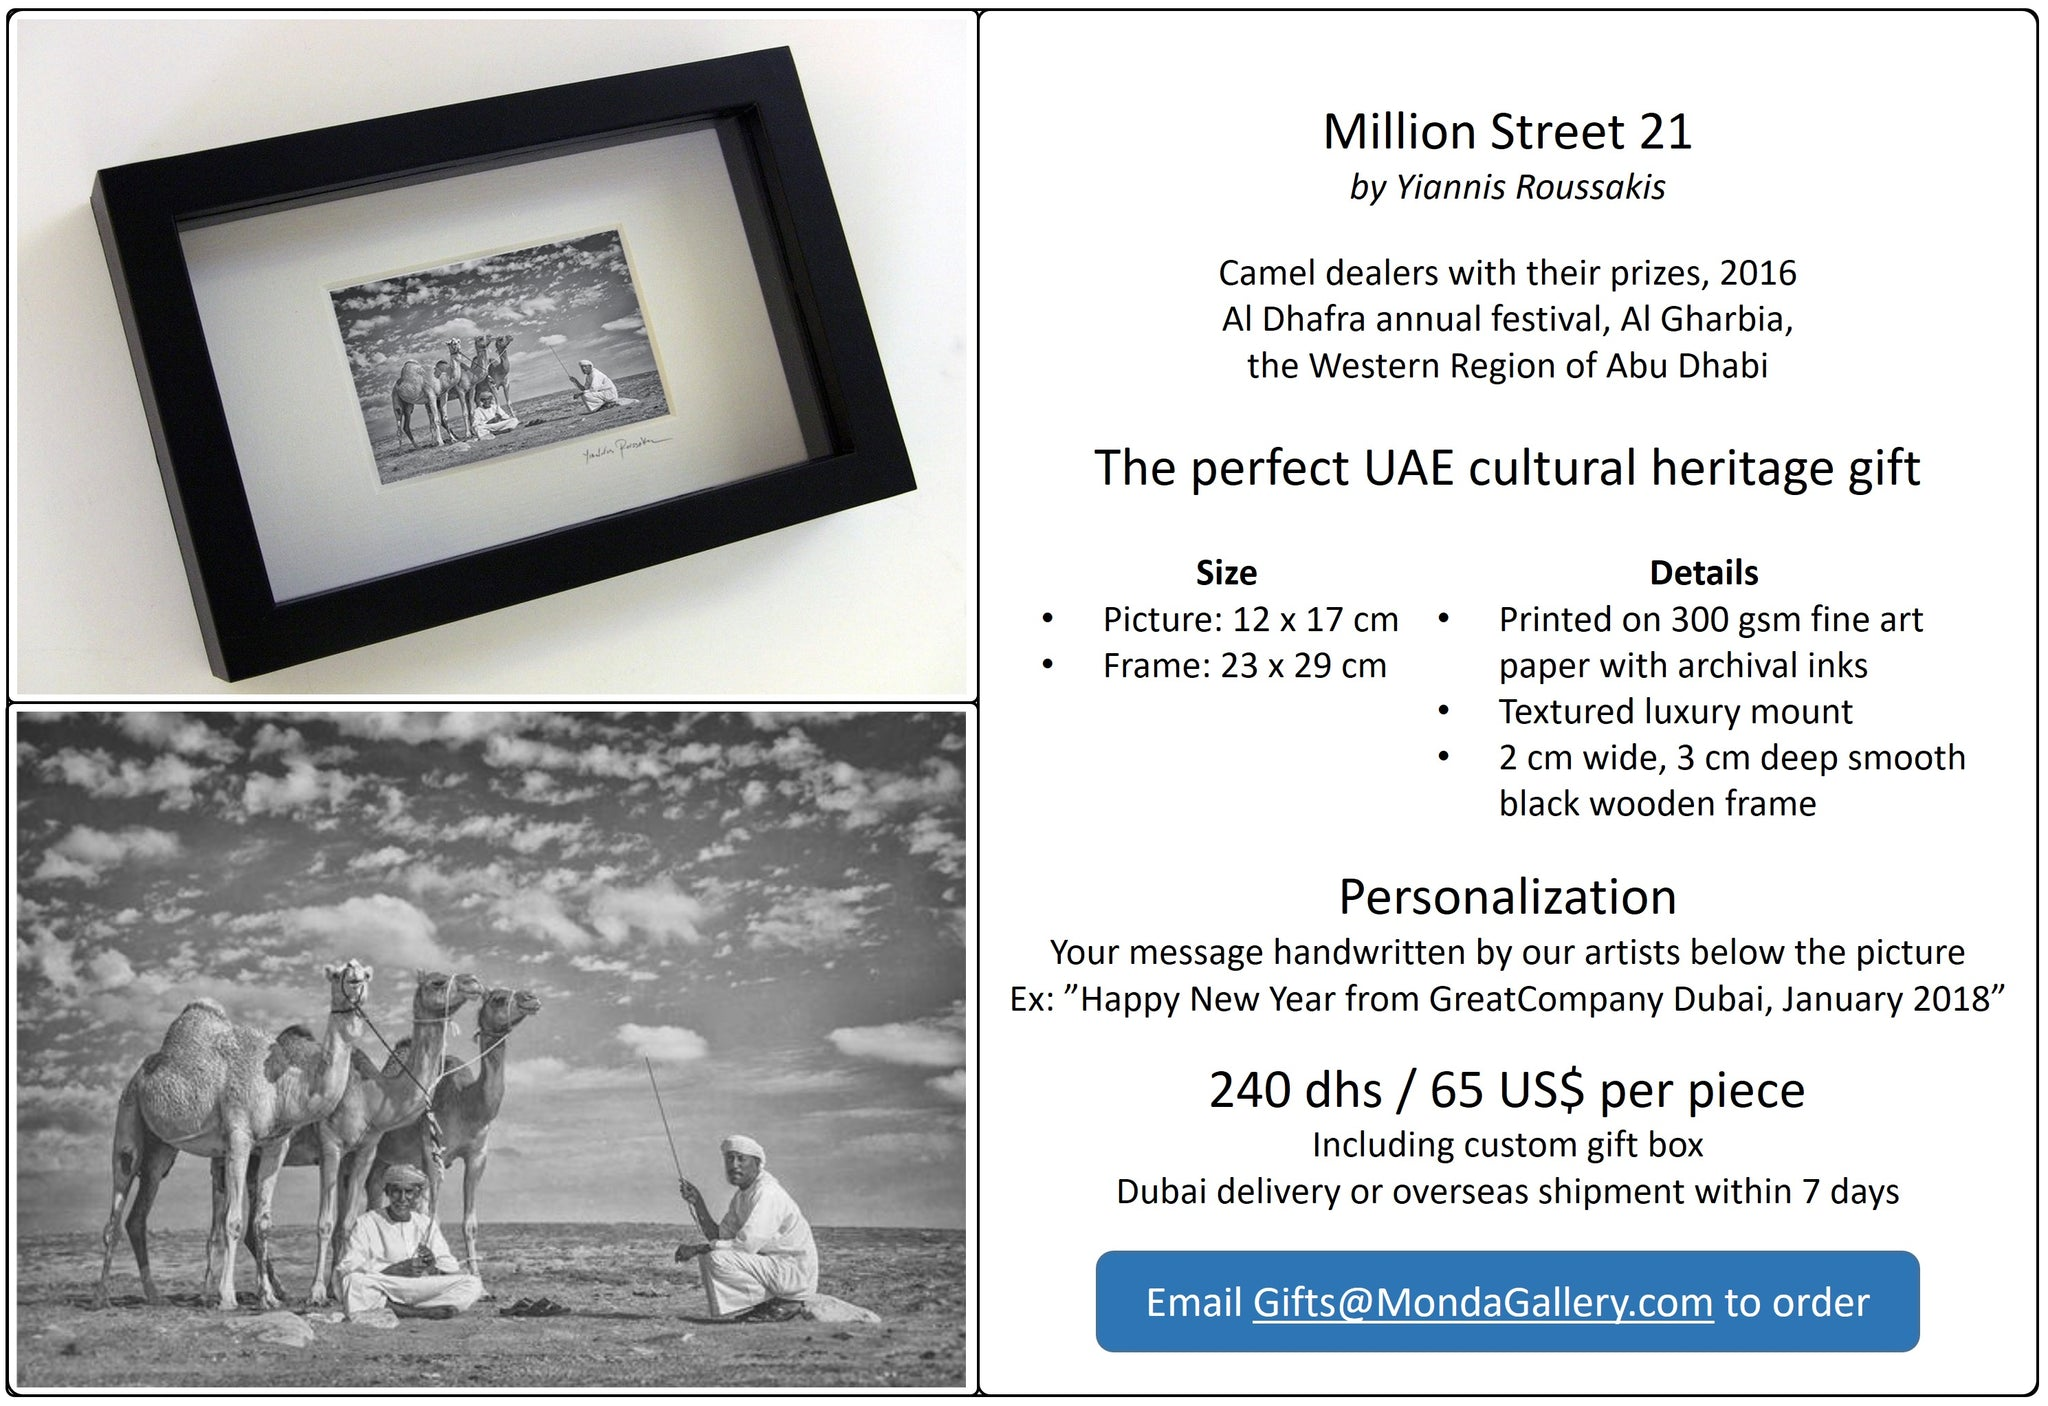 Million Street 21 - Framed Art Corporate Gift